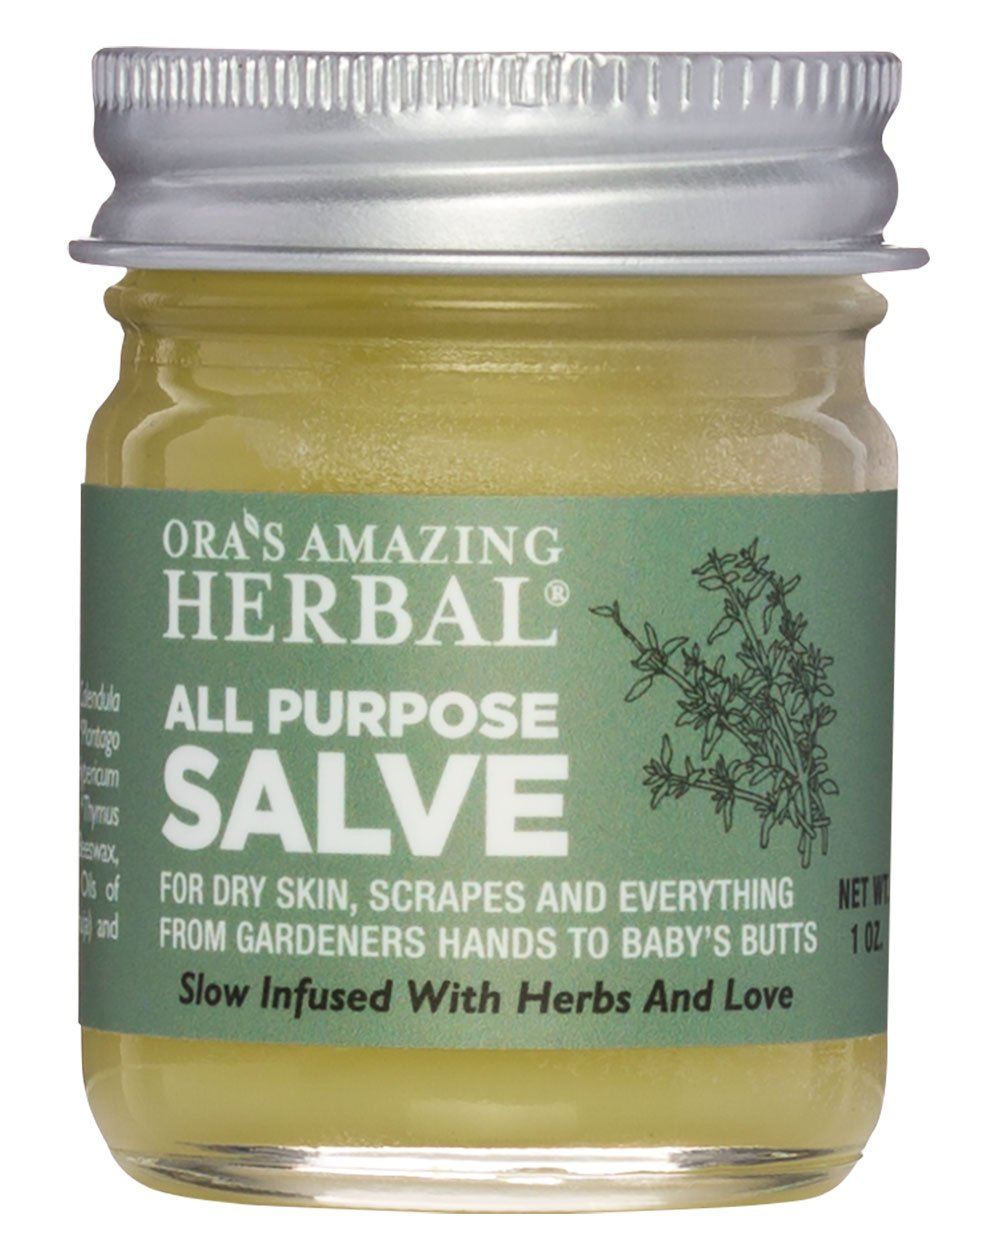 All Purpose Healing Salve Dry Itchy Skin Cracked Heels Hands Feet Scrapes Bites Minor Burns Natural Sunburn Relief First Aid Ointment with Tea Tree Oil Ora's Amazing Herbal Made In The USA Travel Size